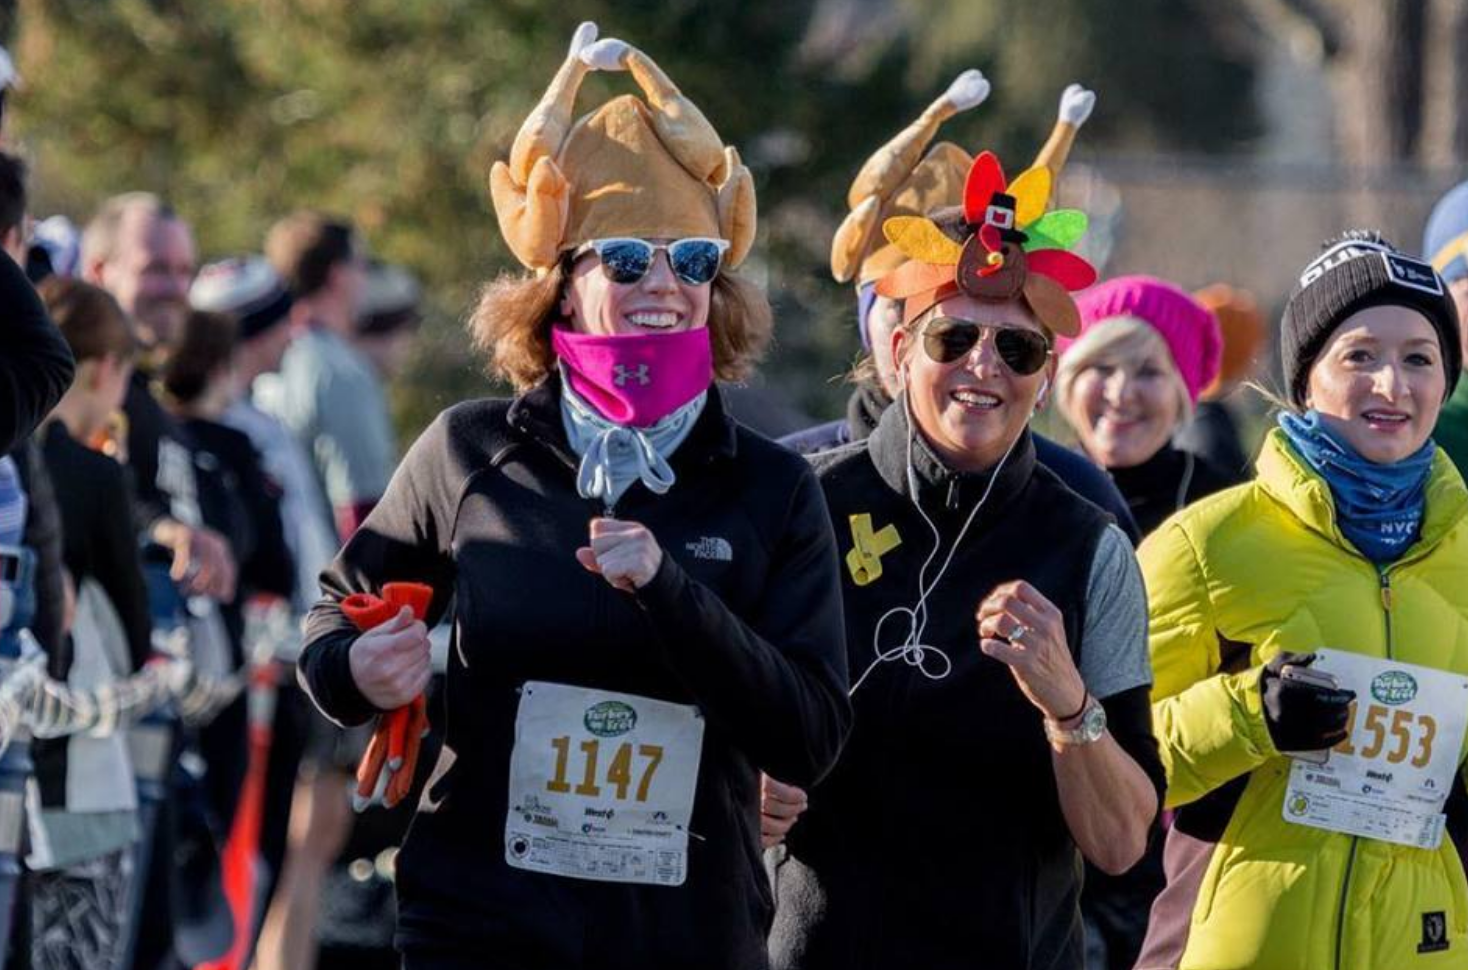 Gobble, gobble! This year's race participants showed their Thanksgiving spirit and smiled as they ran.